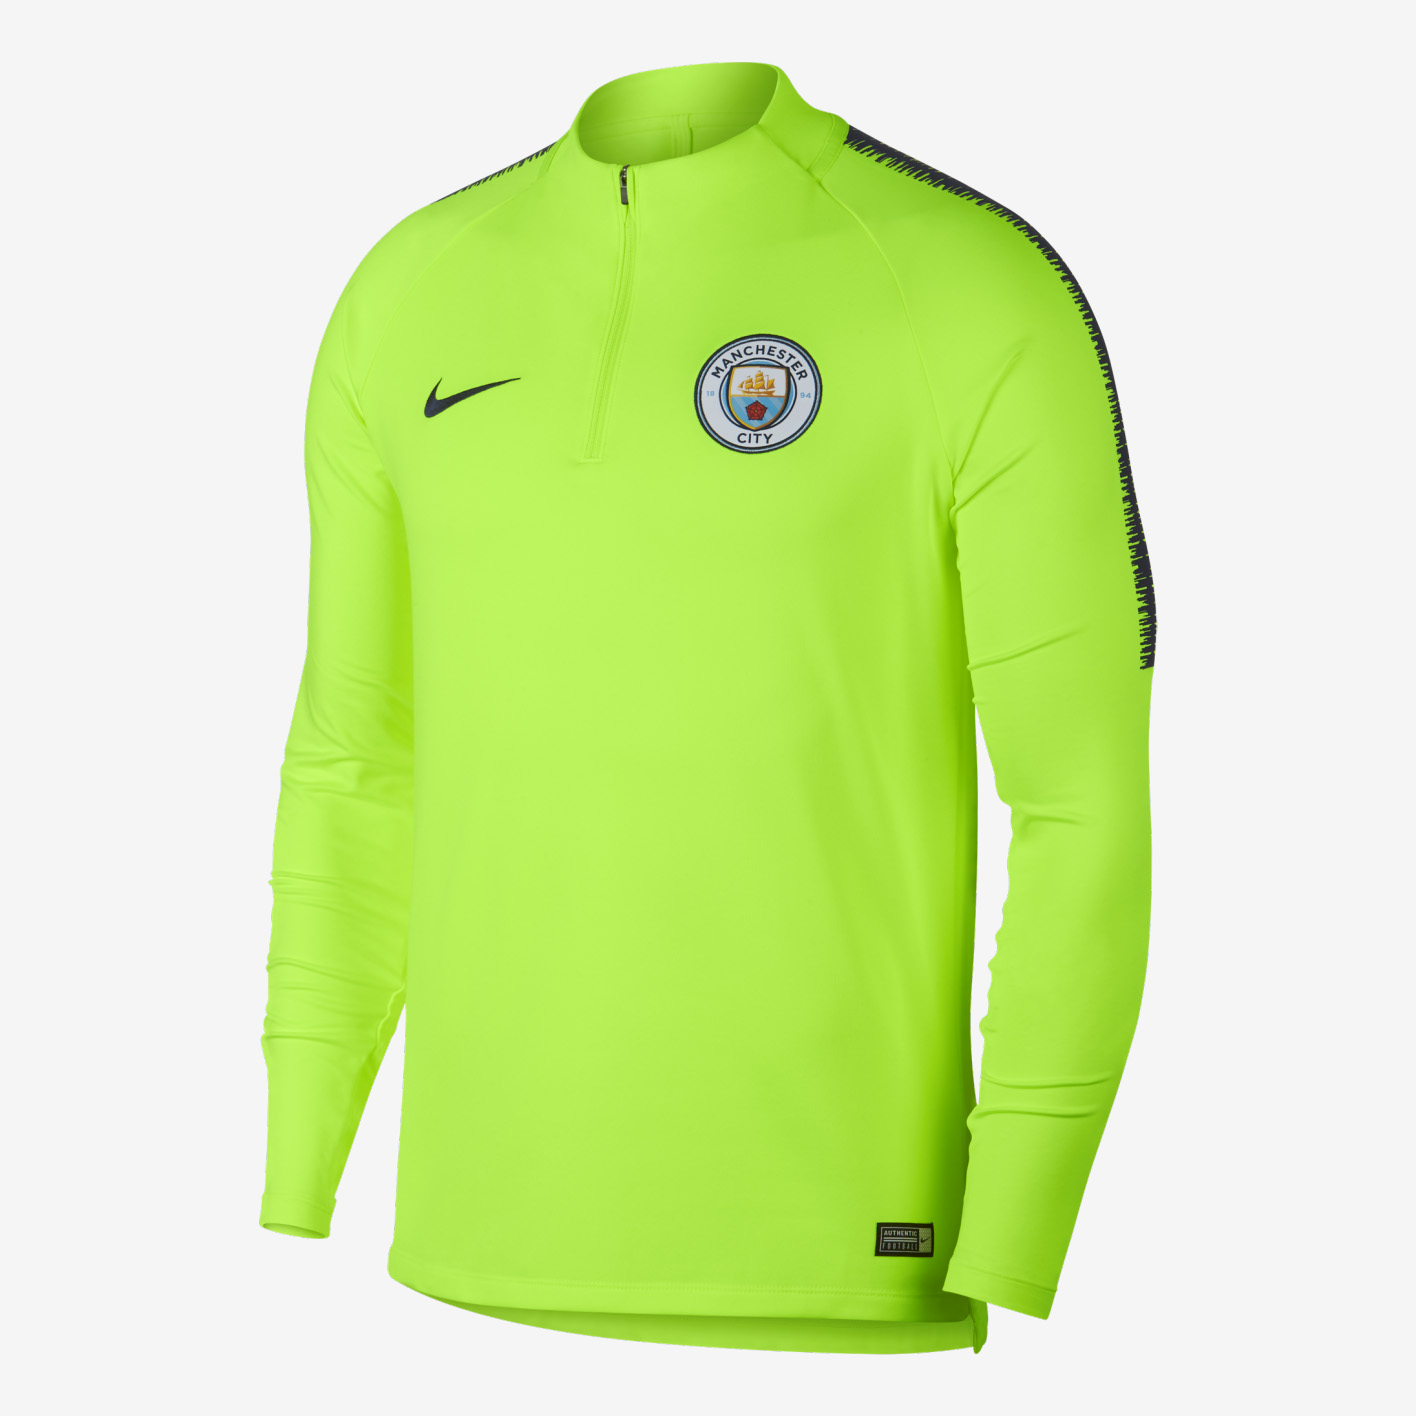 062fbeaee88 Nike Manchester City FC 2018 19 Dri-FIT Squad Drill Top - Soccer Shop Manchester  City Merchandise - Superfanas.lt